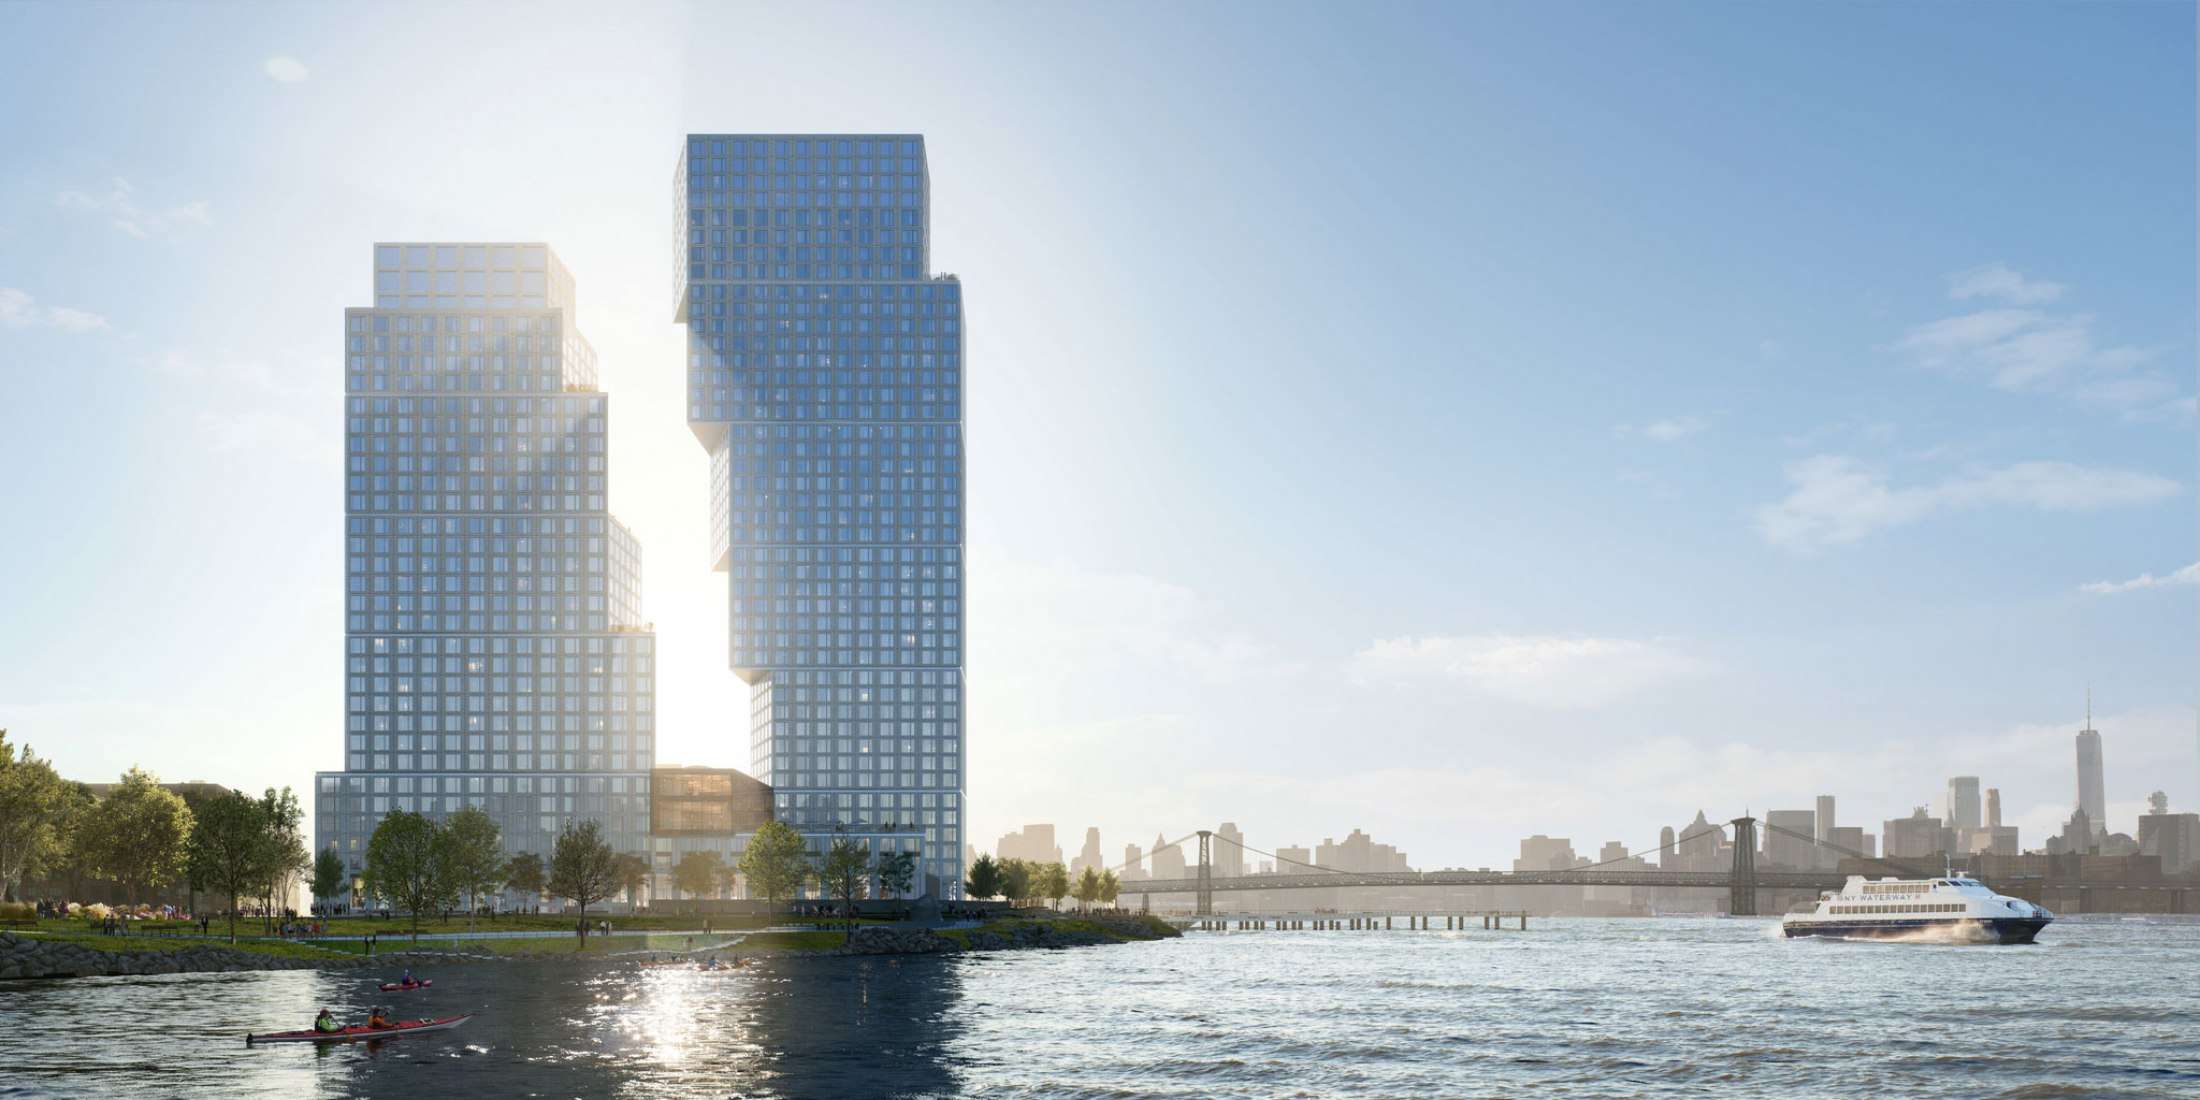 Rendering. Greenpoint Landing Block D by OMA / Jason Long. Image © OMA, Bloom